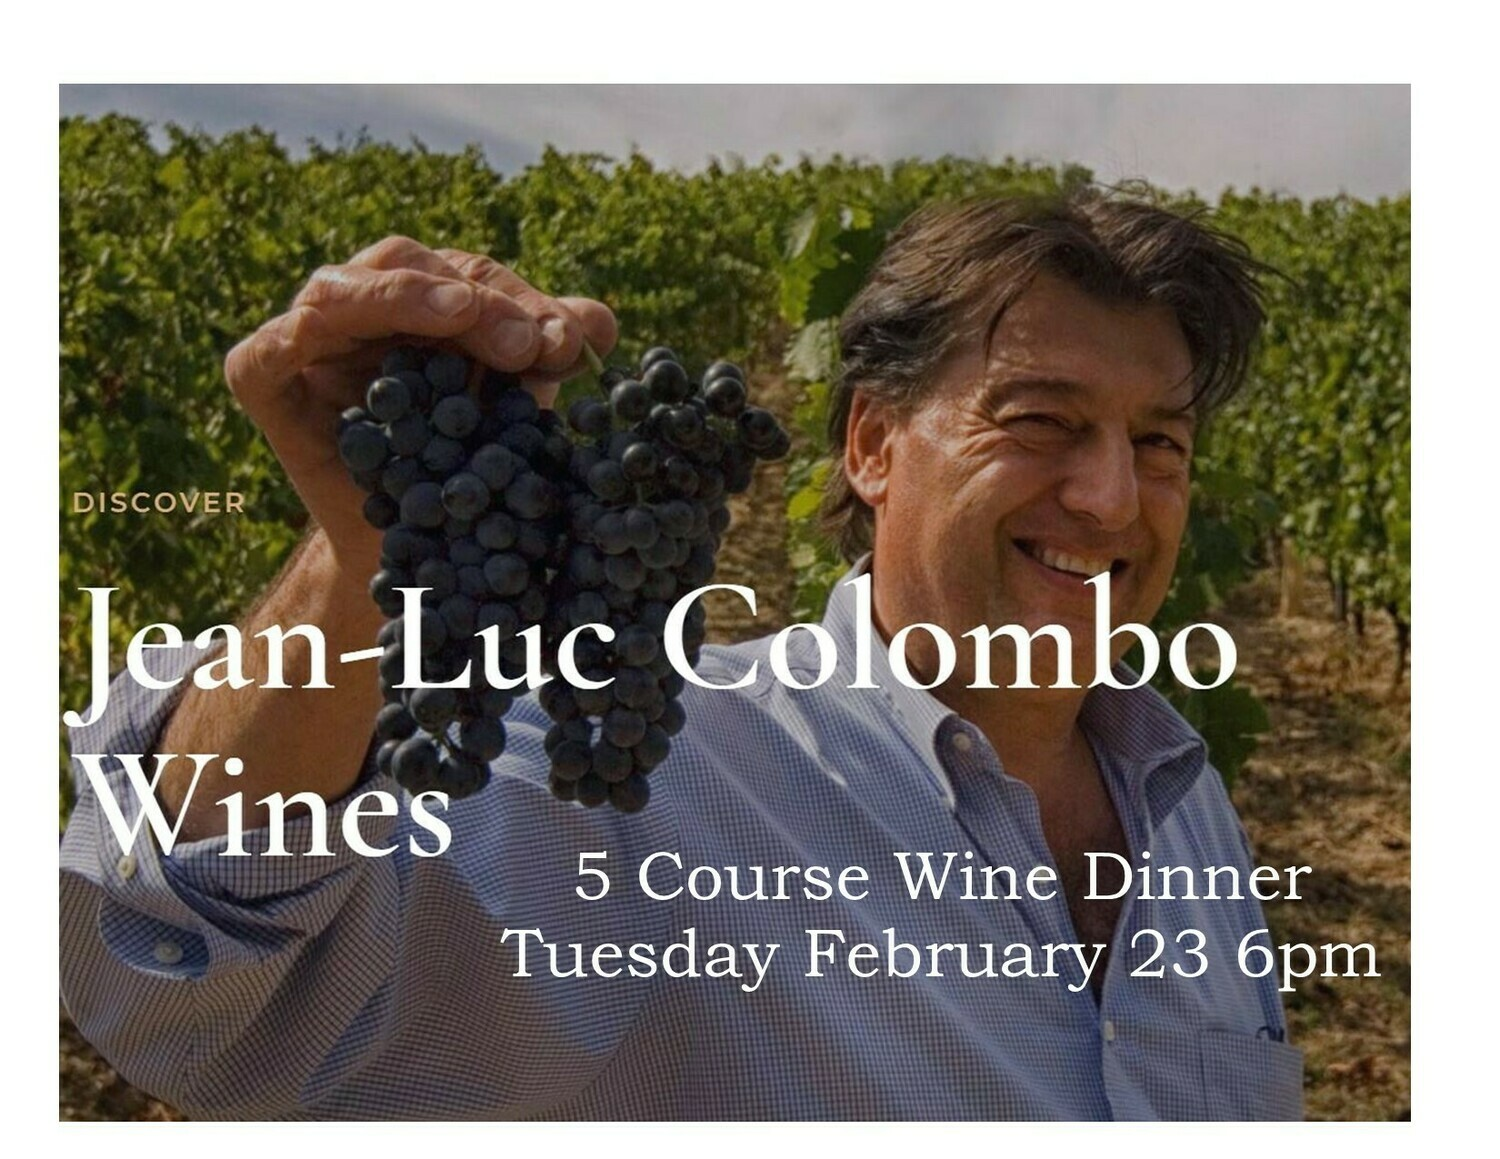 2/23 French Jean-Luc Colombo 5 Course Wine Dinner